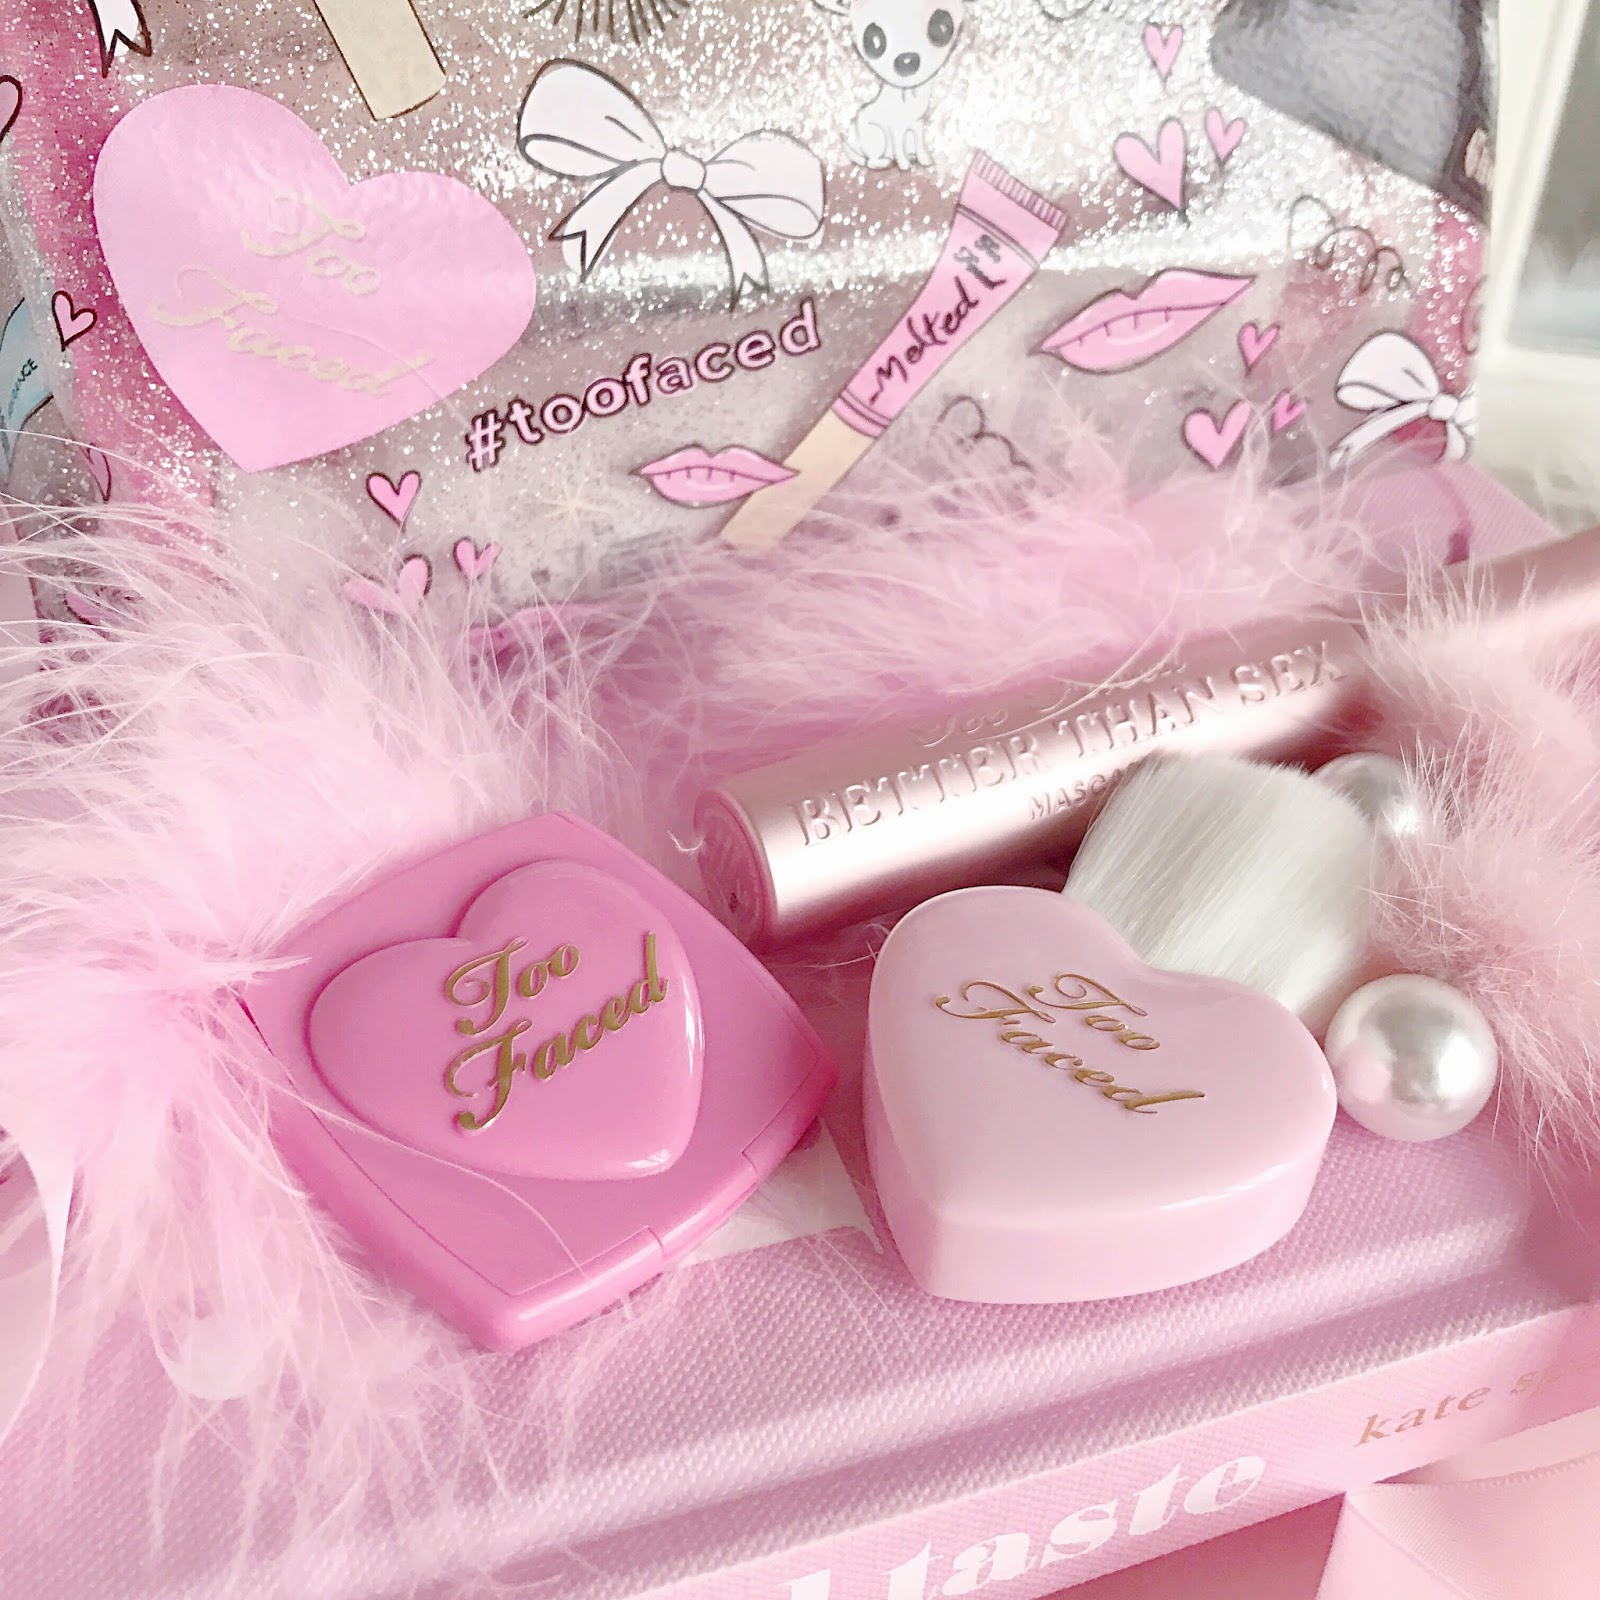 Love, Catherine | Too Faced X Skinnydip